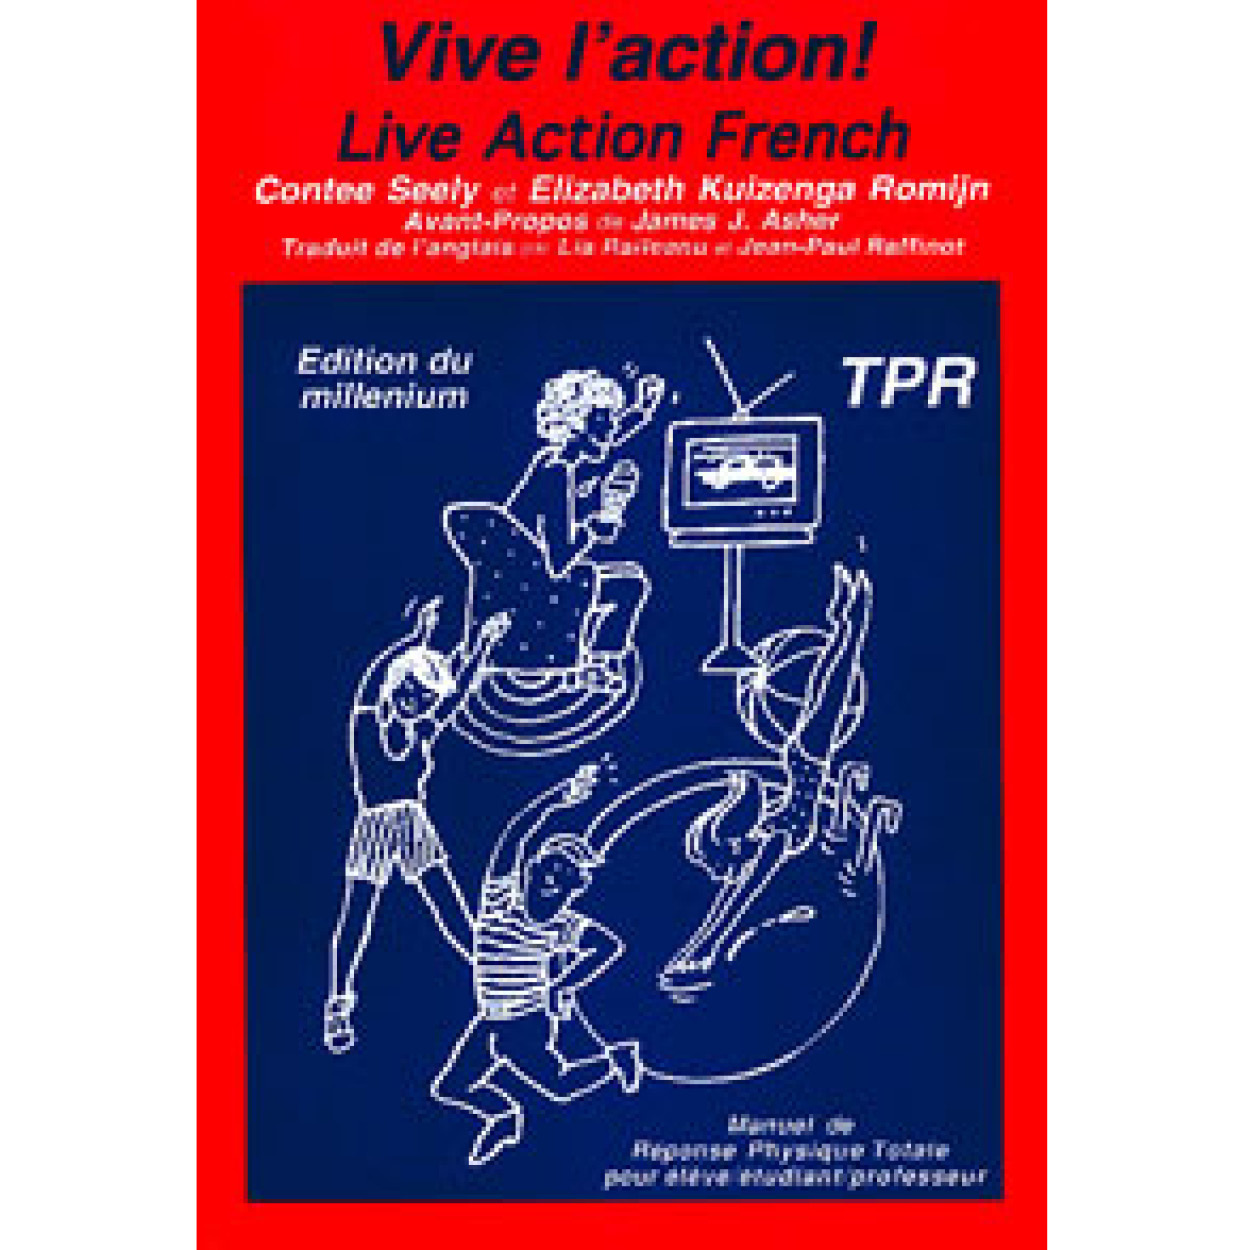 Vive l'action! Live action French!